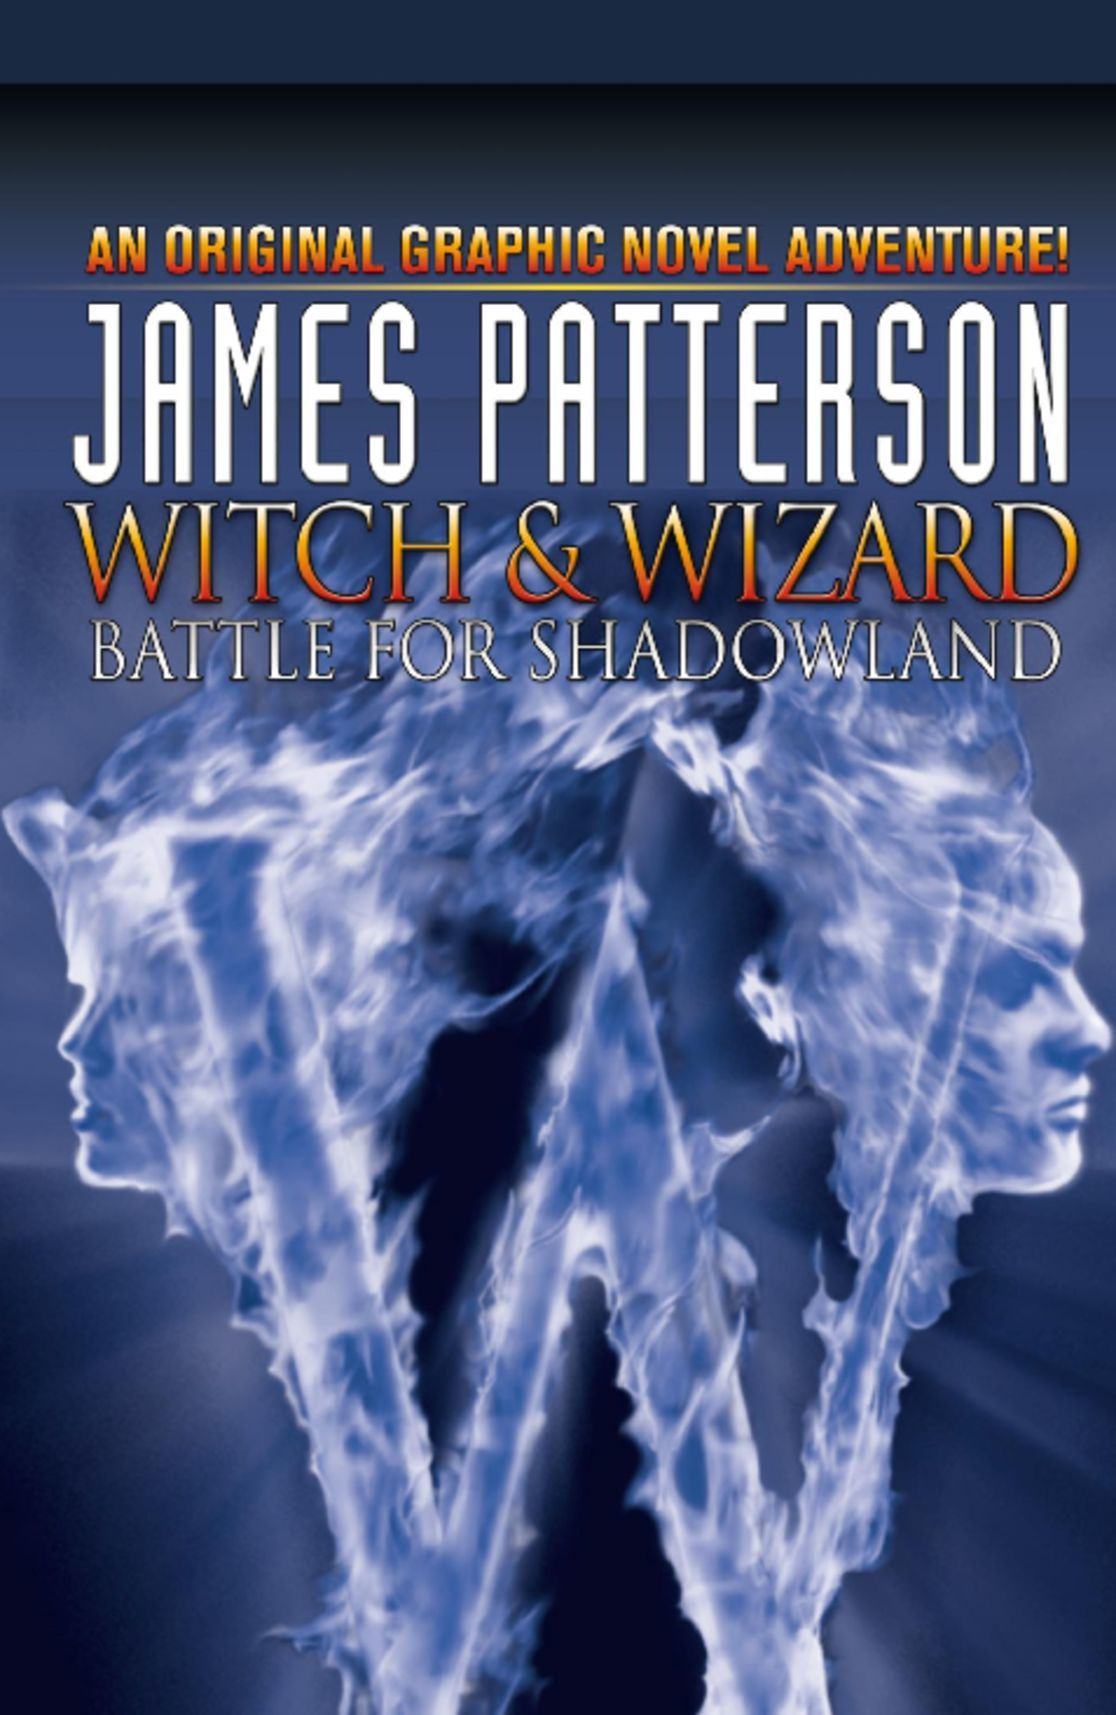 James Pattersons Witch Wizard Vol 1 Battle for Shadowland Digital